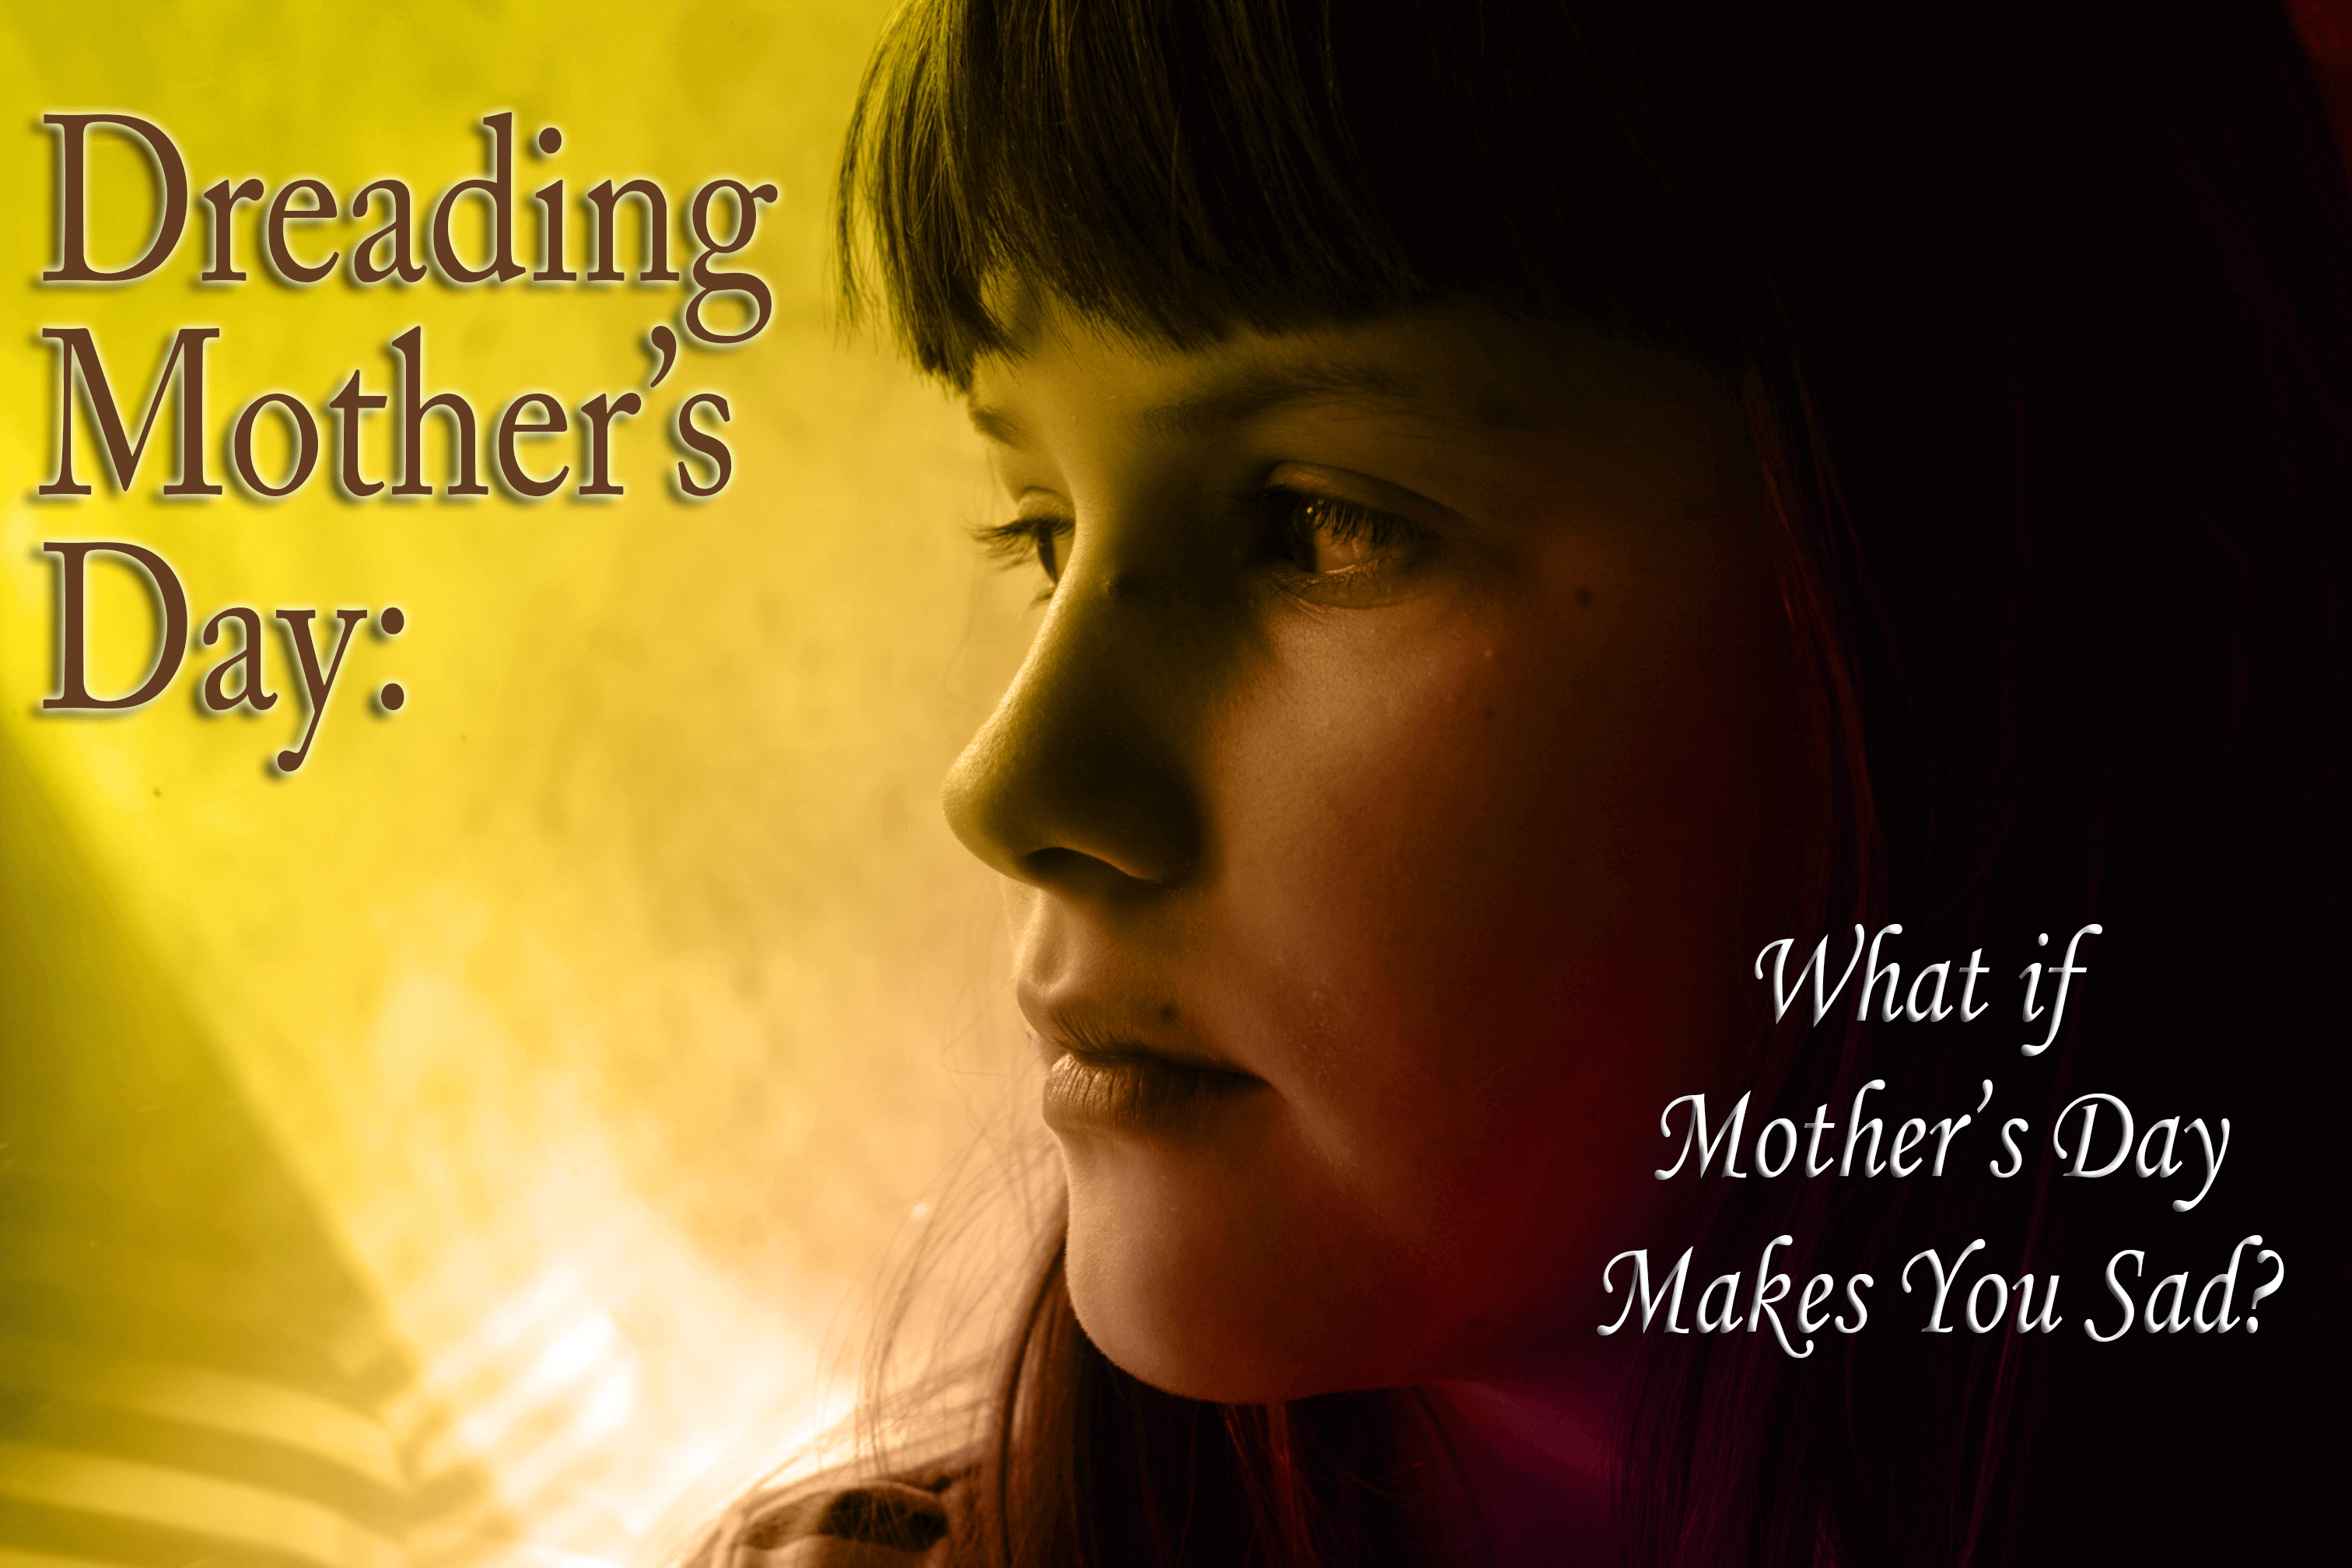 Dreading Mother's Day: What if Mother's Day Brings Up Sadness?